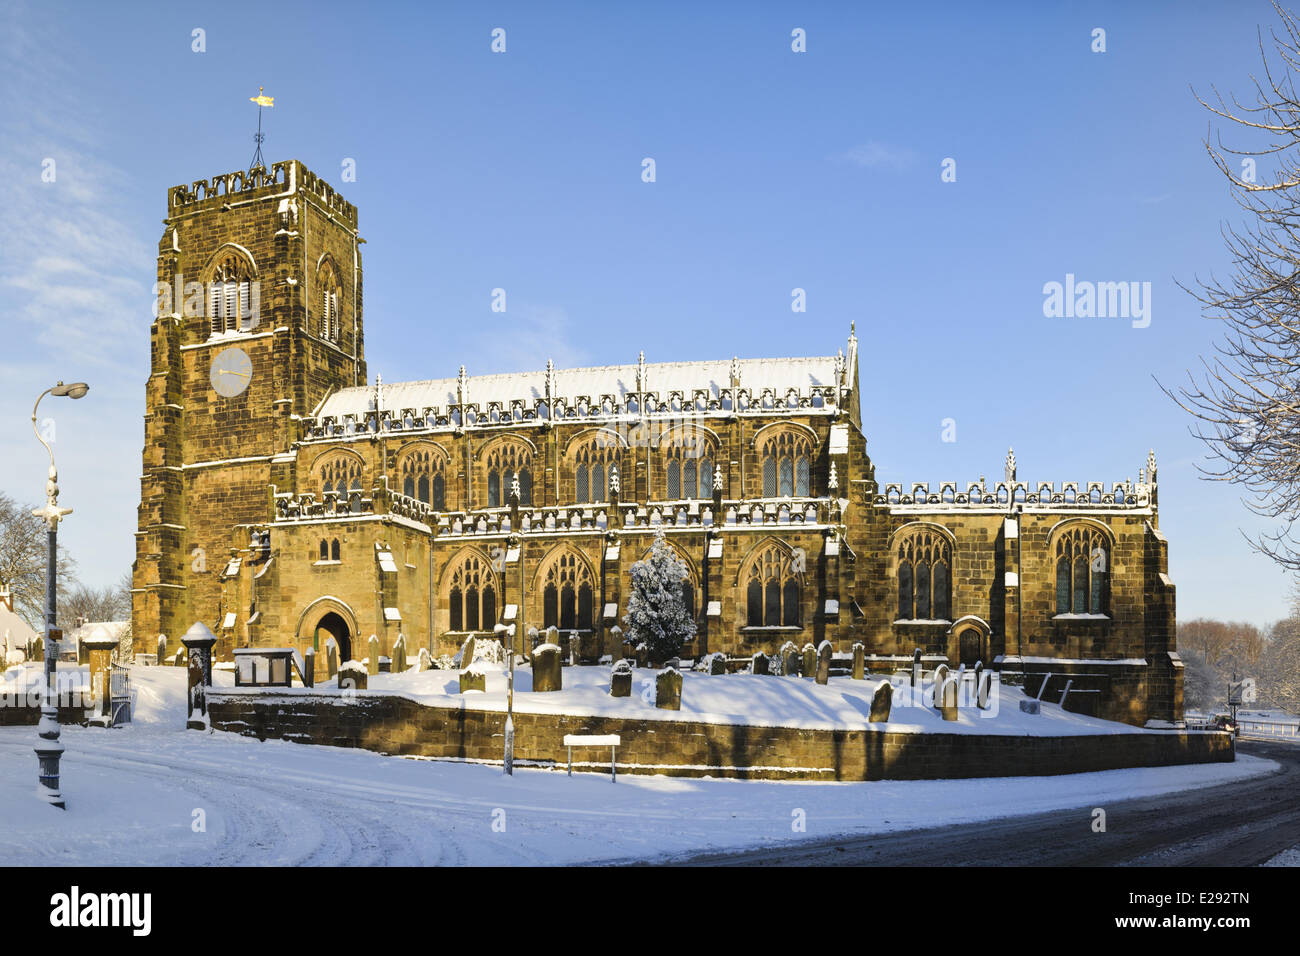 15th century church in snow on sunny day, St. Mary's Church, Thirsk, North Yorkshire, England, January - Stock Image